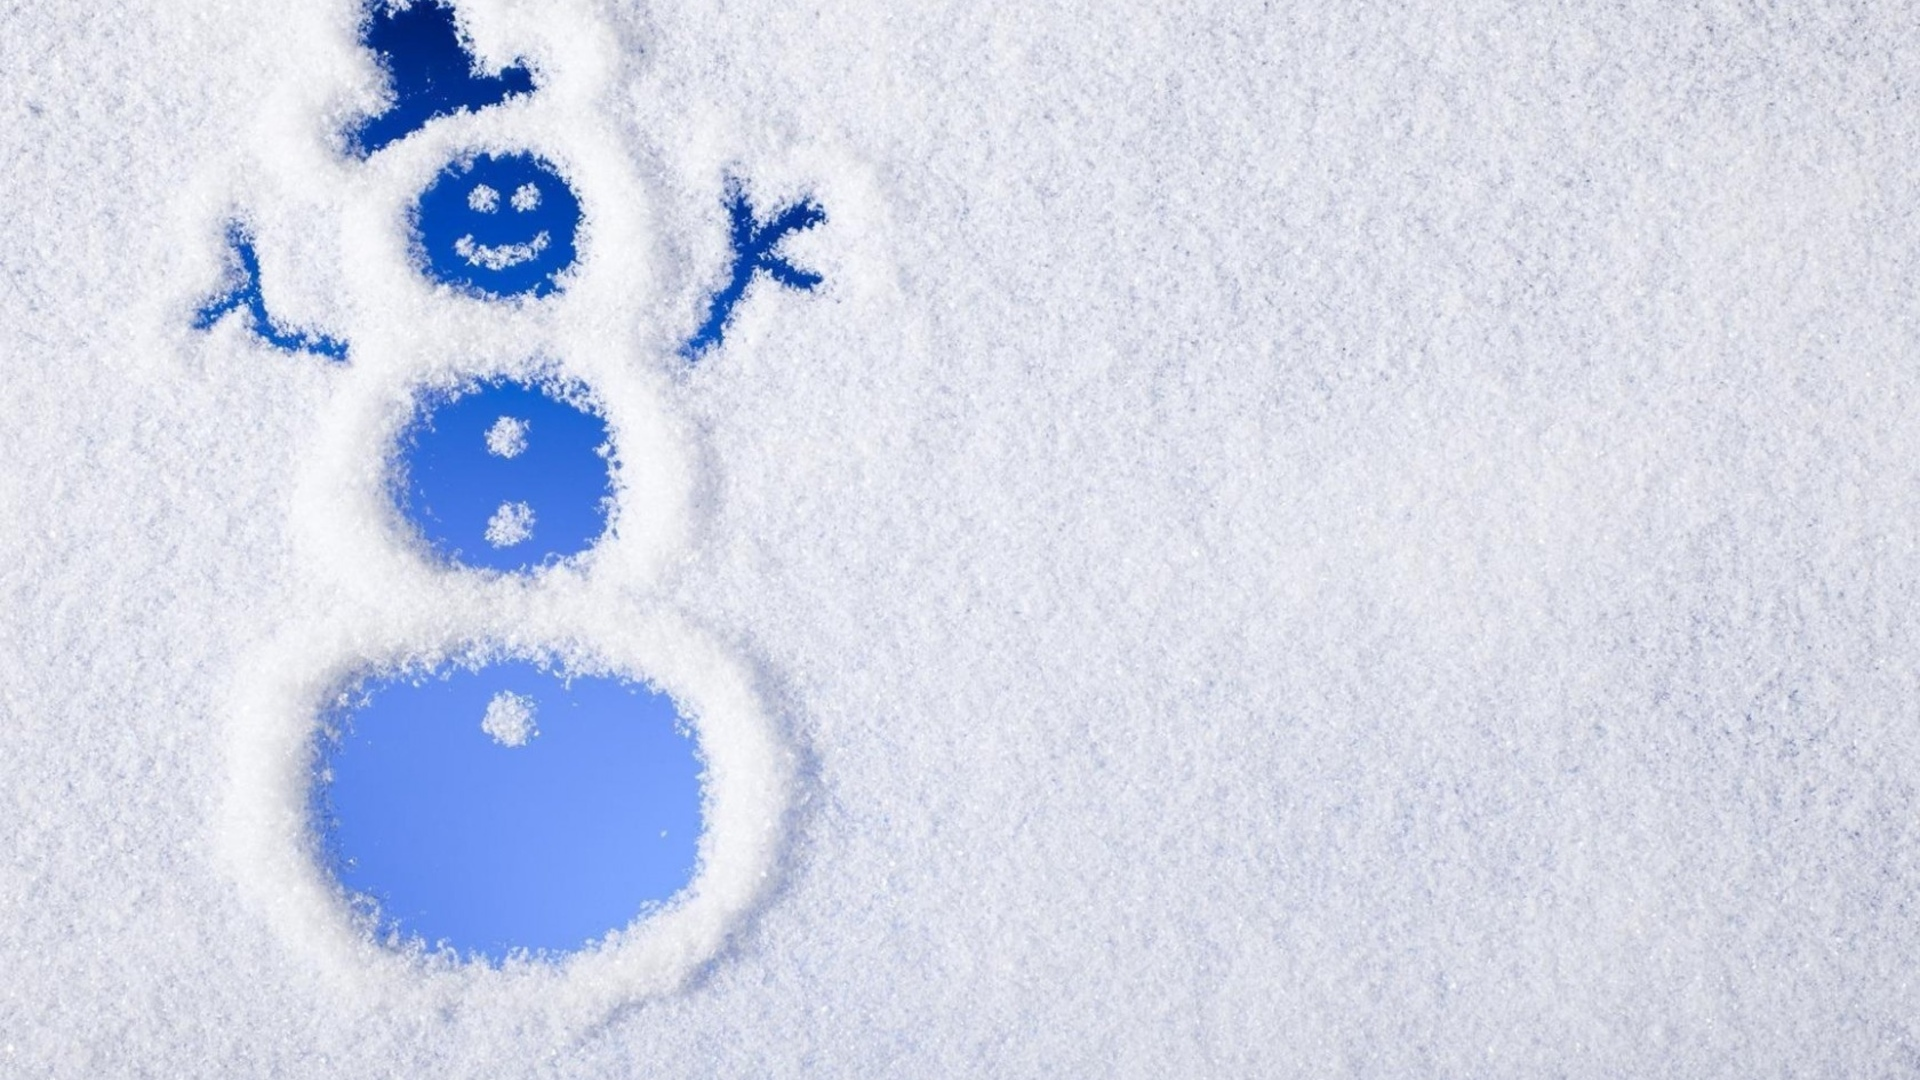 Funny Snowman Wallpaper